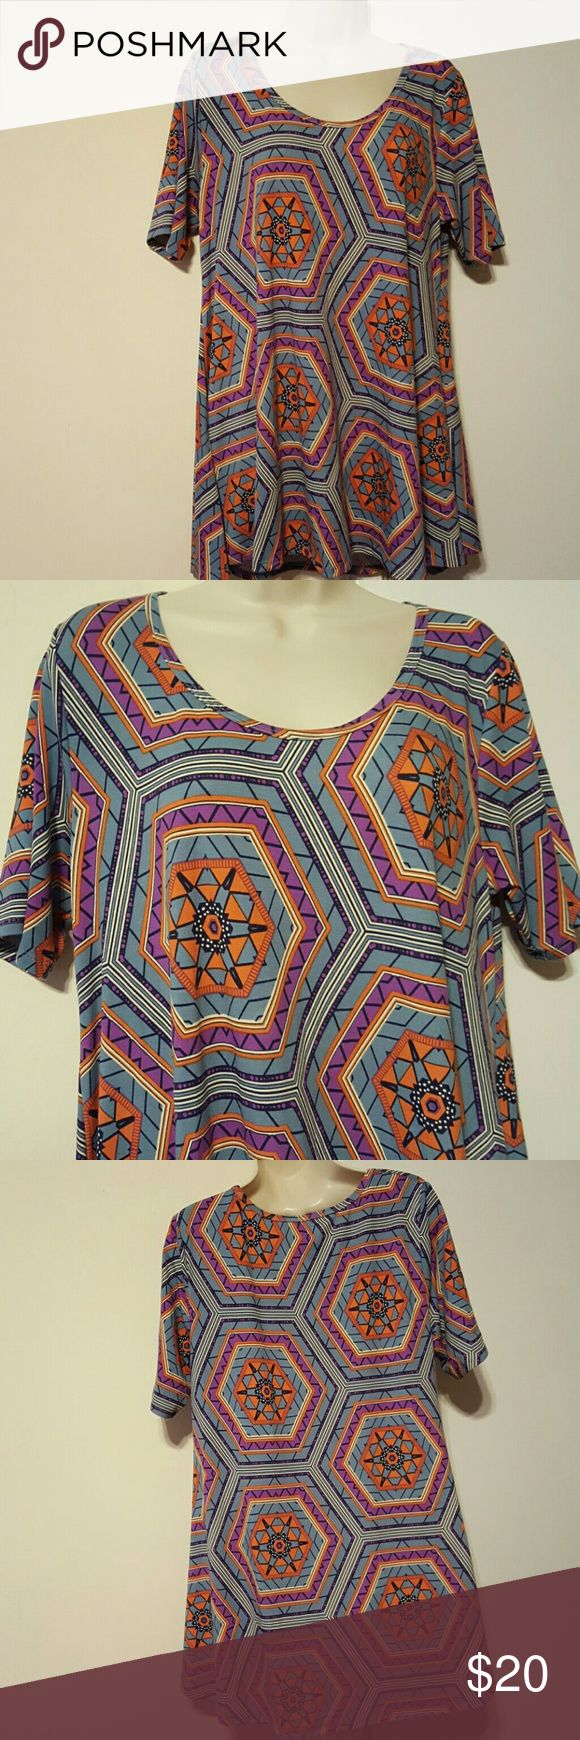 SALE!!🎉 LULAROE AZTEC BLOUSE √Aztec Blouse √Color: Purple, Indigo, Black, White and Orange √Armpit to Armpit 20 √Top to Bottom 28 √Material: 96% Polyester and 4% Spandex √In good condition LuLaRoe Tops Blouses